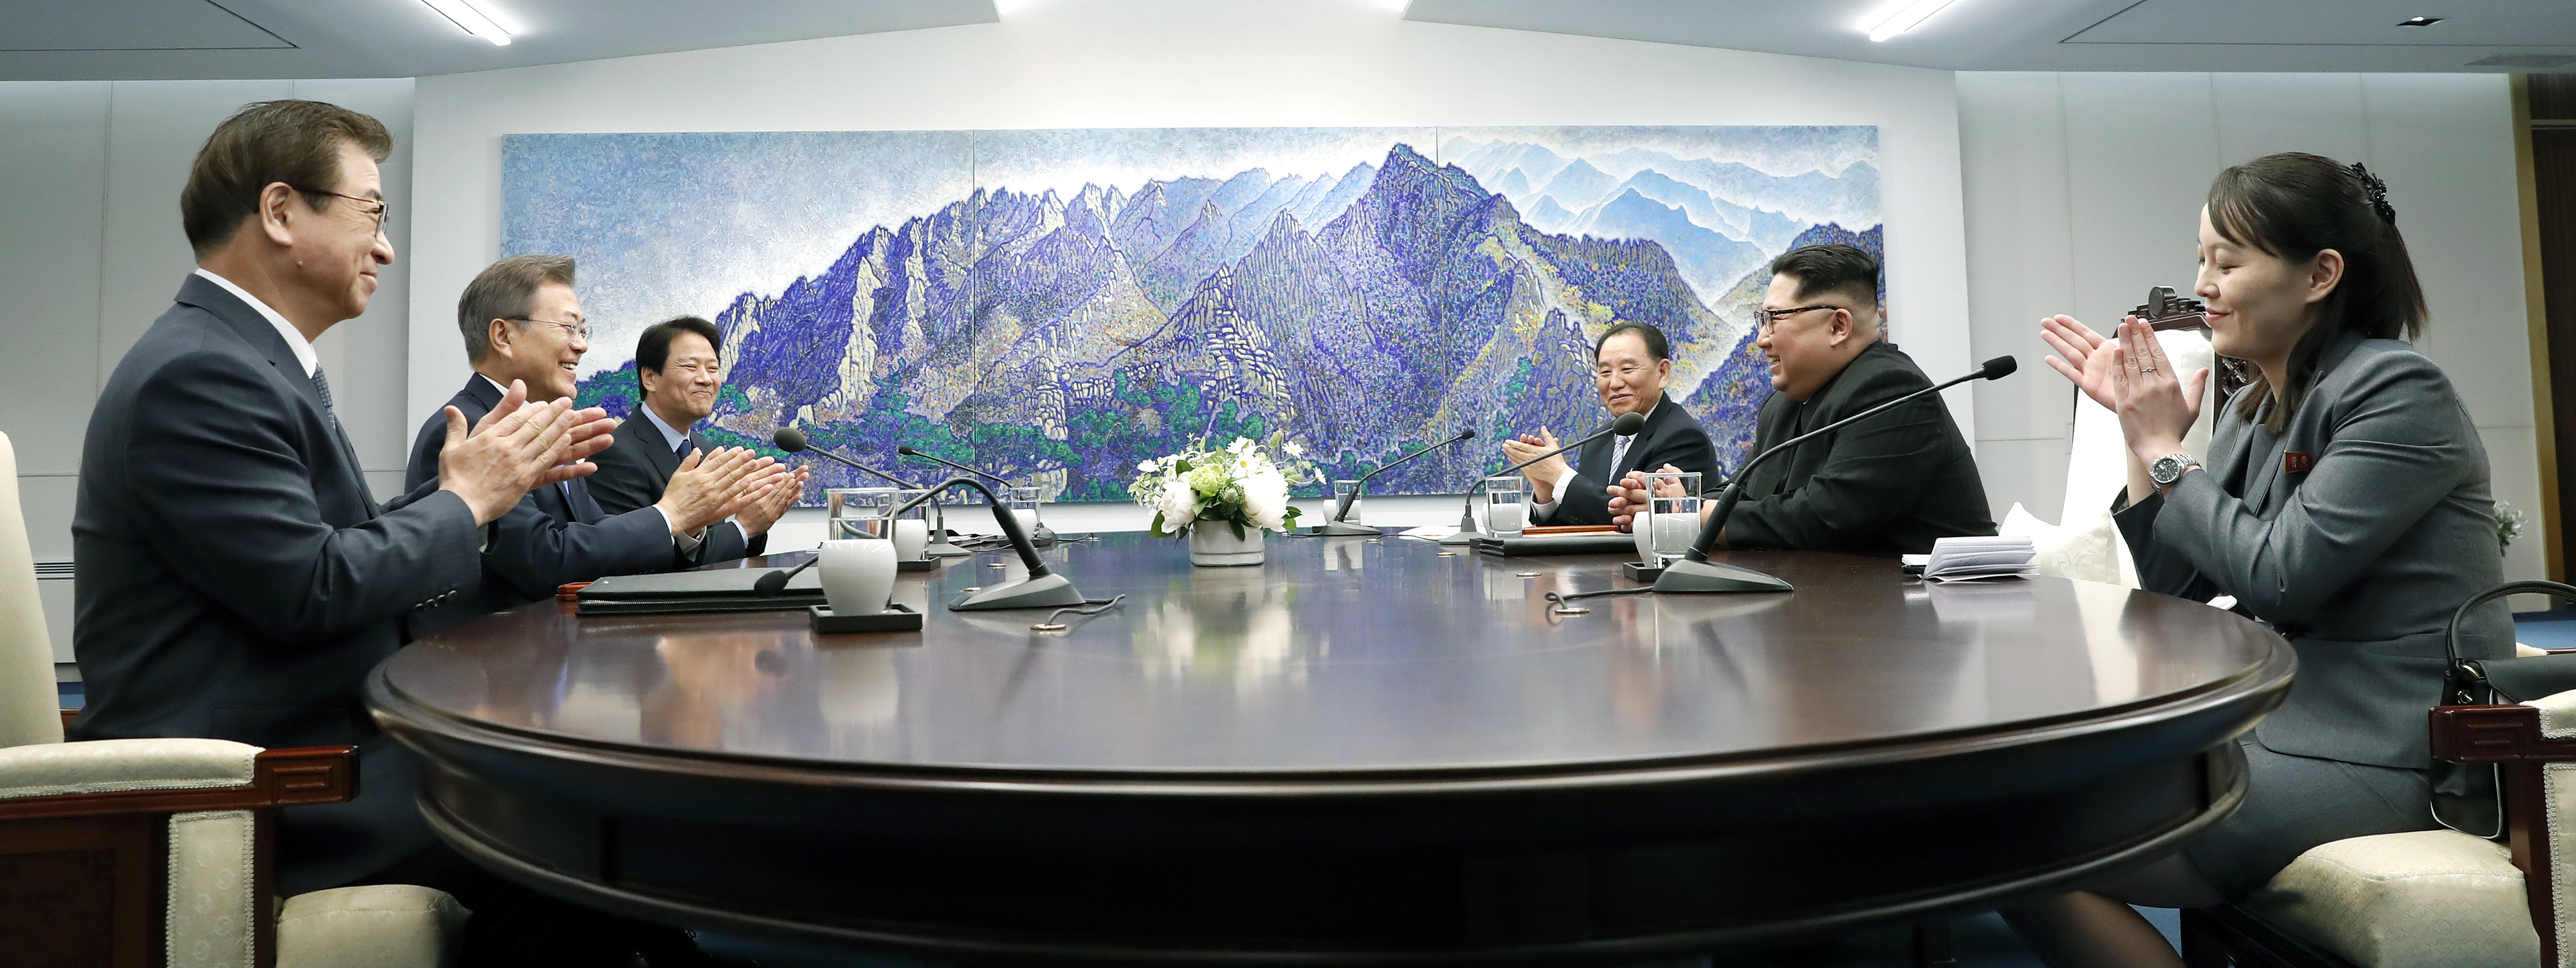 PANMUNJOM, SOUTH KOREA - APRIL 27: South Korean delegation including President Moon Jae-in (L) and North Korean delegation including Leader Kim Jong Un (R) sit down for the Inter-Korean Summit at the Peace House on April 27, 2018 in Panmunjom, South Korea. Kim and Moon meet at the border today for the third-ever inter-Korean summit talks after the 1945 division of the peninsula, and first since 2007 between then President Roh Moo-hyun of South Korea and Leader Kim Jong-il of North Korea. (Photo by Korea Summit Press Pool/Getty Images)